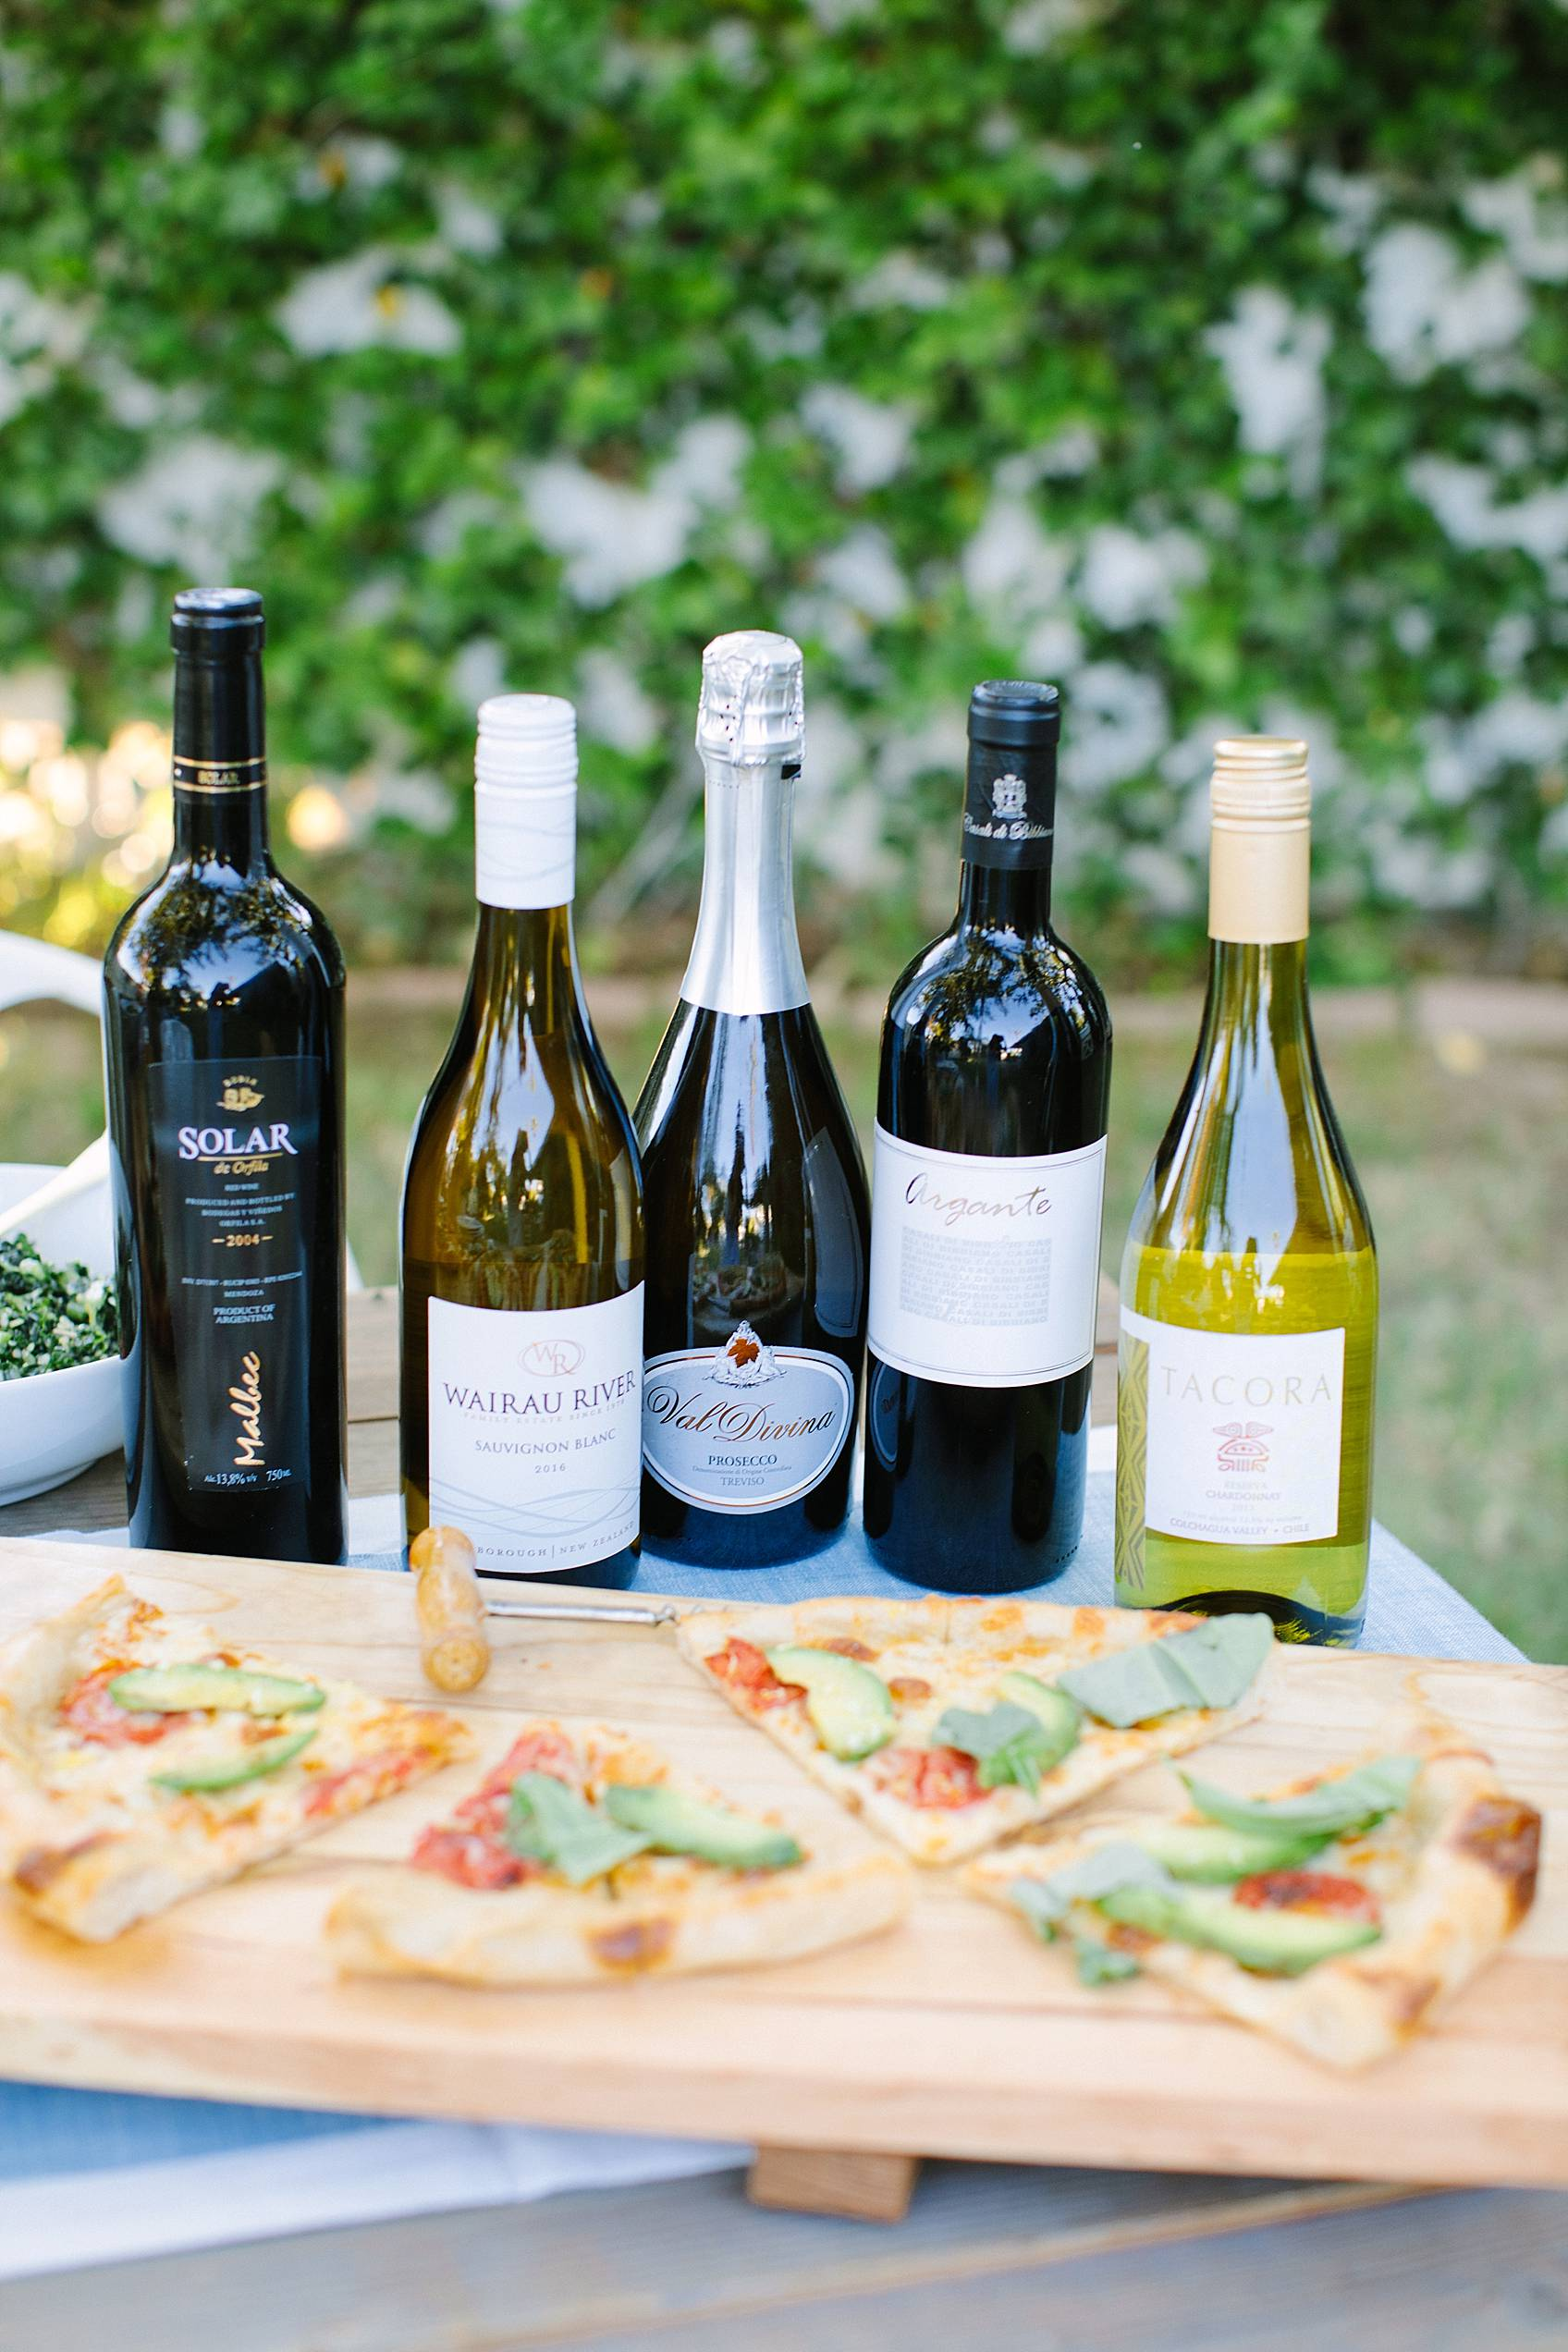 bottles of wine on table behind pizza featured from grapeswine.com